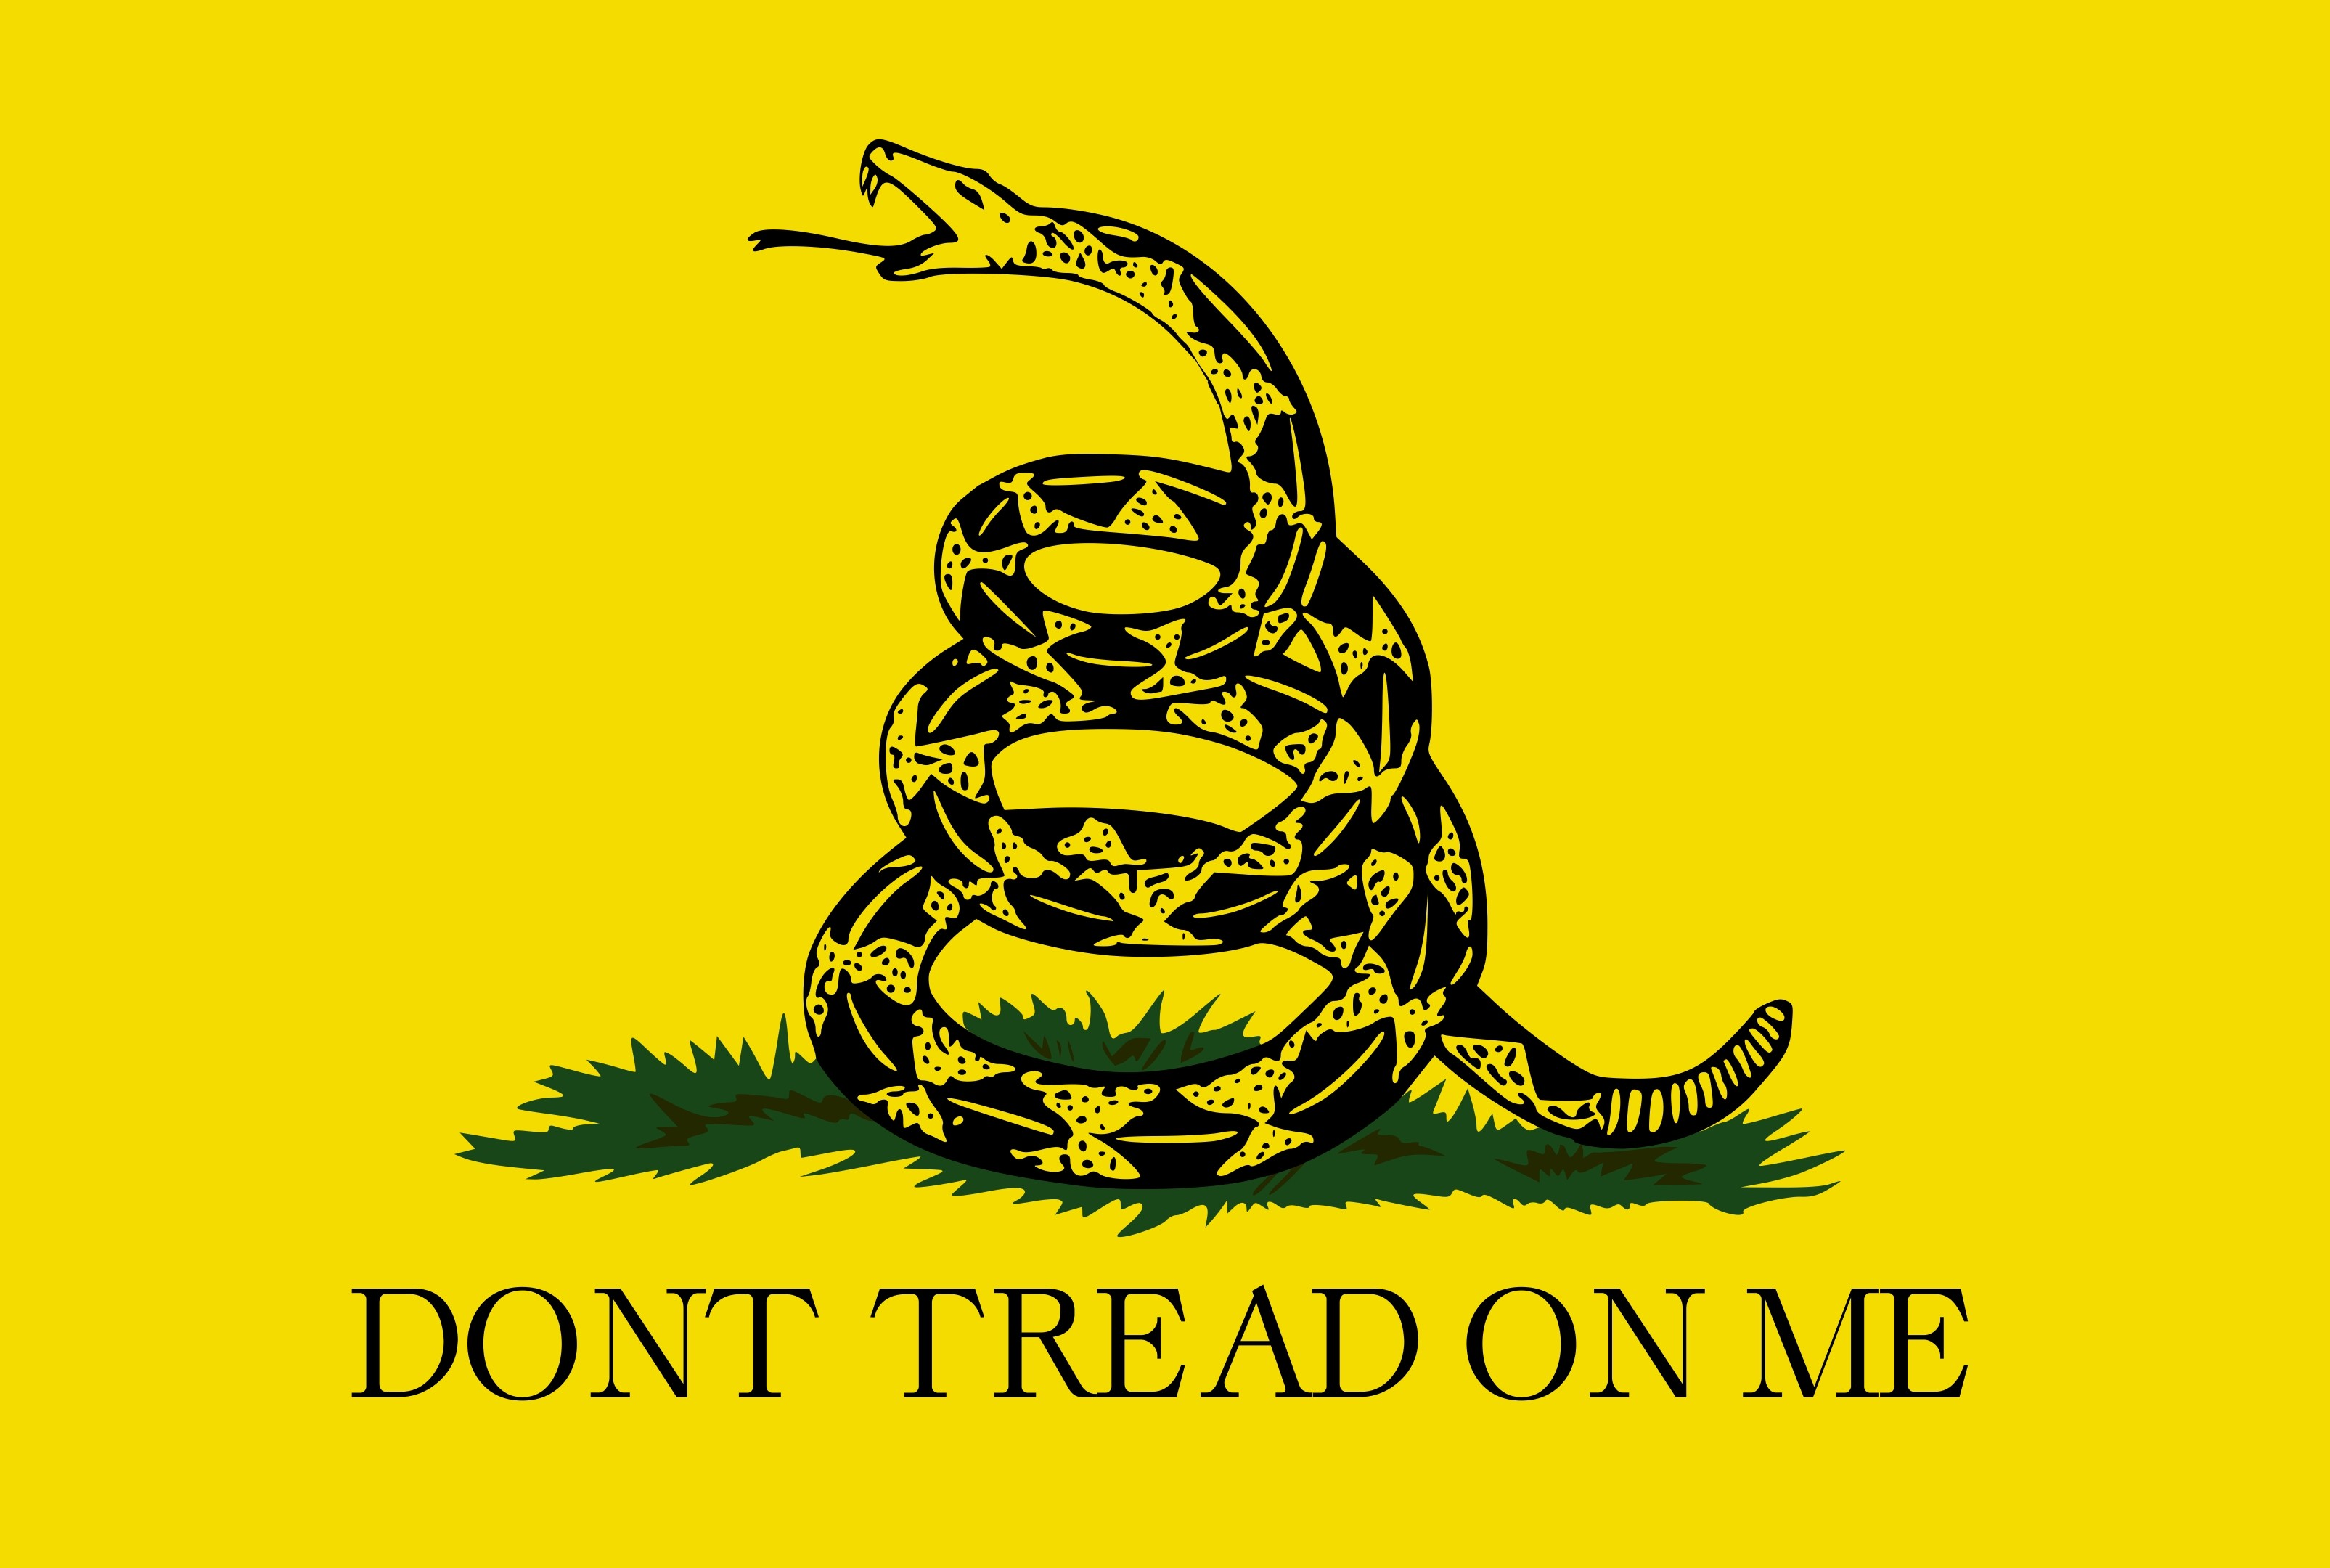 16in x 12in gadsden flag decal bumper sticker vinyl truck window stickers